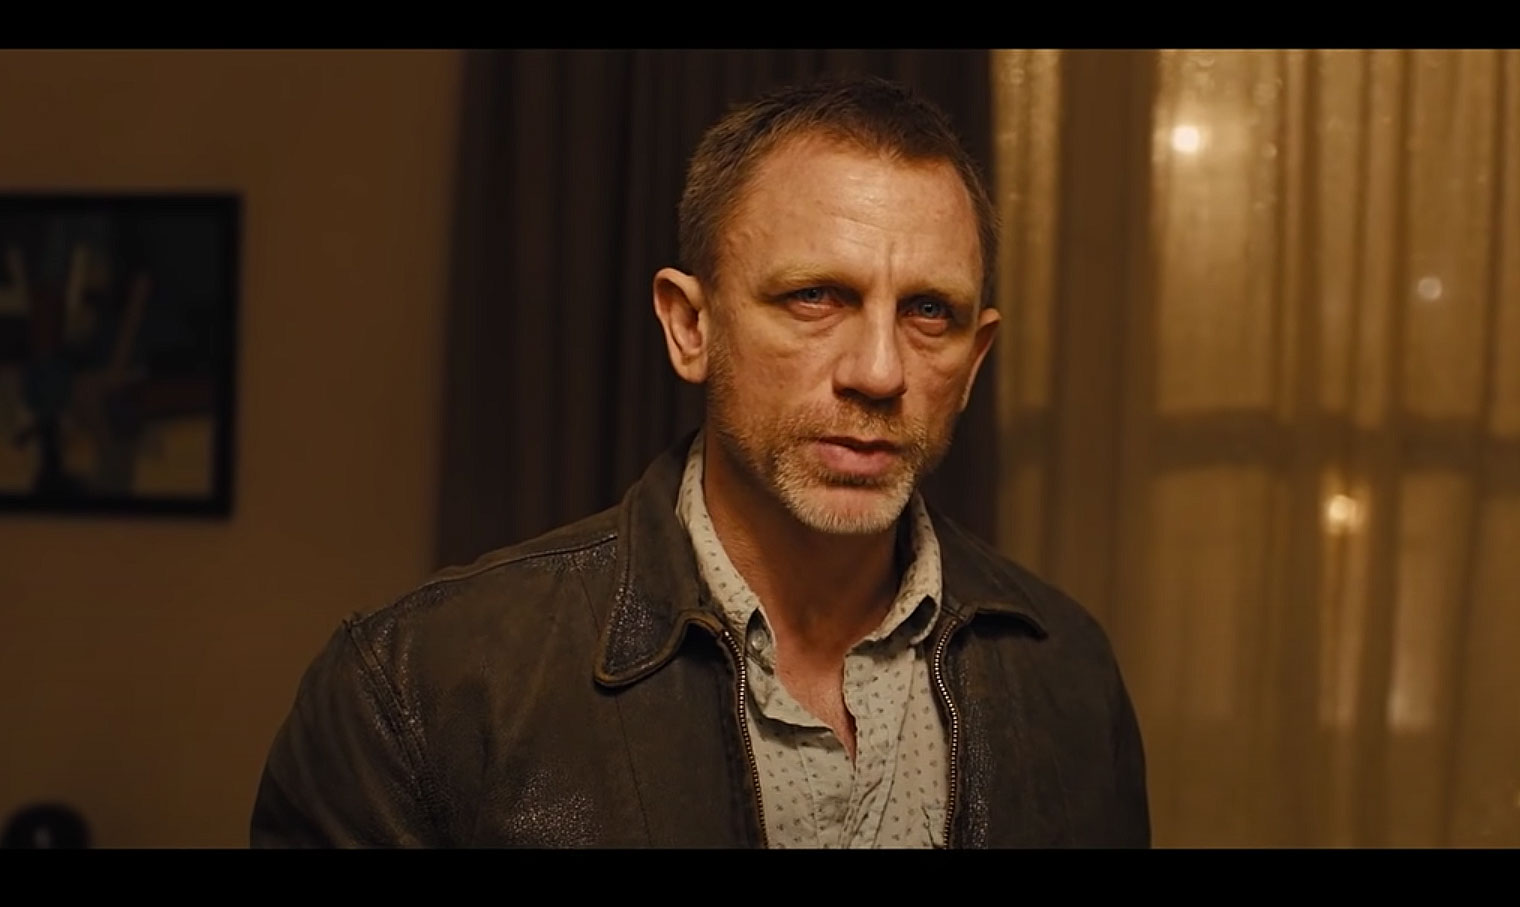 Daniel Craig wearing the Leather Jacket from Skyfall